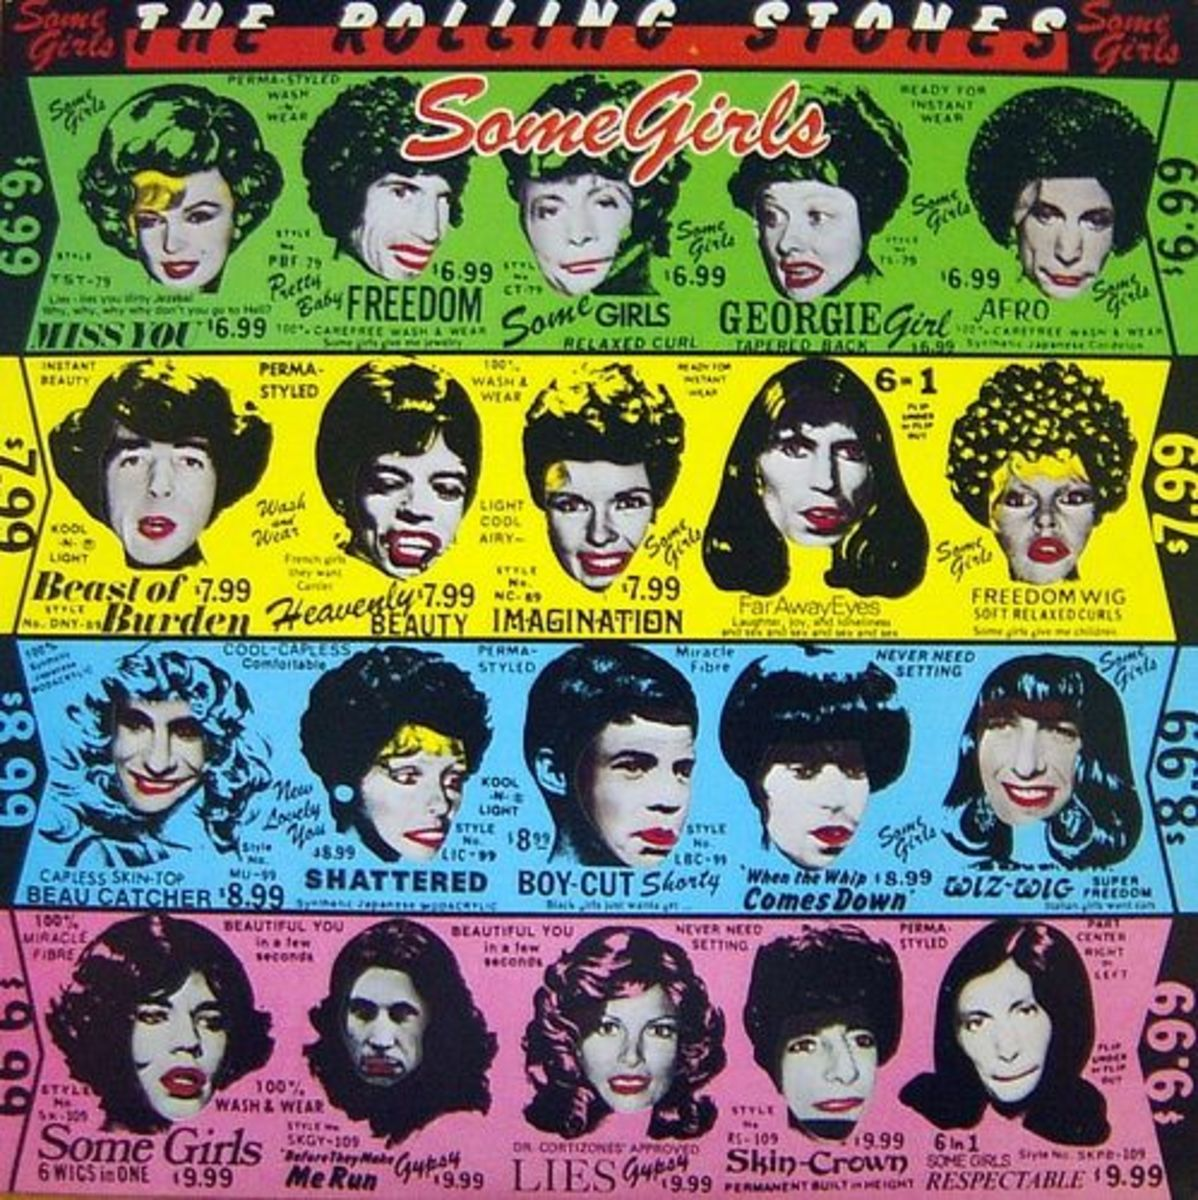 "The Rolling Stones ""Some Girls"" Rolling Stones Records COC 39108 12"" LP Vinyl Record (1978) Album Cover Art & Design by Peter Corriston"